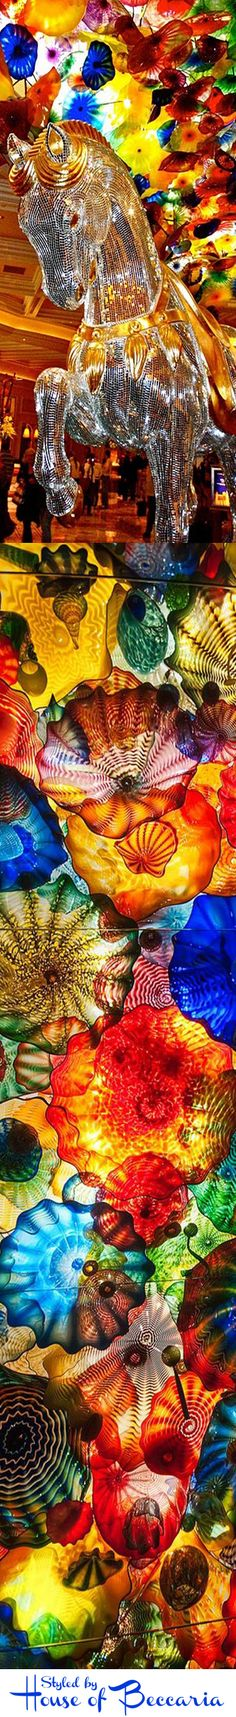 ~The ceiling in the lobby of the Bellagio Casino in Las Vegas is adorned with 2,000 hand-blown glass flowers - the Fiori di Como - created by world-renowned artist, Dale Chihuly | House of Beccaria